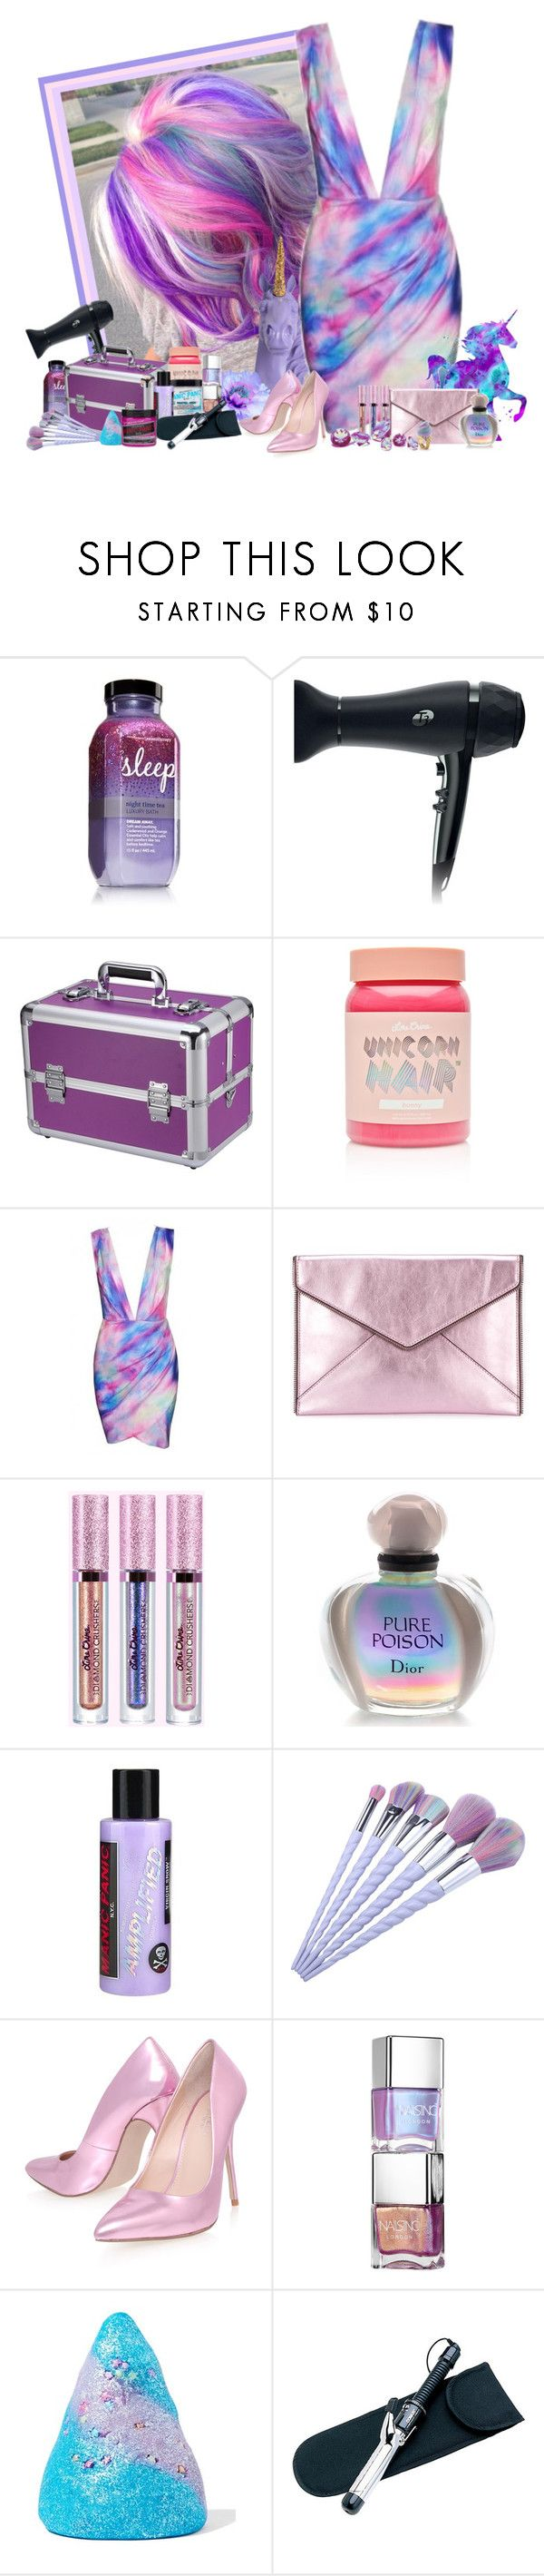 """""""Unicorn Hair!!!"""" by frane-x ❤ liked on Polyvore featuring beauty, New Look, T3, Lime Crime, Manic Panic NYC, White Faux Taxidermy, Rebecca Minkoff, Christian Dior, Sretsis and Carvela Kurt Geiger"""